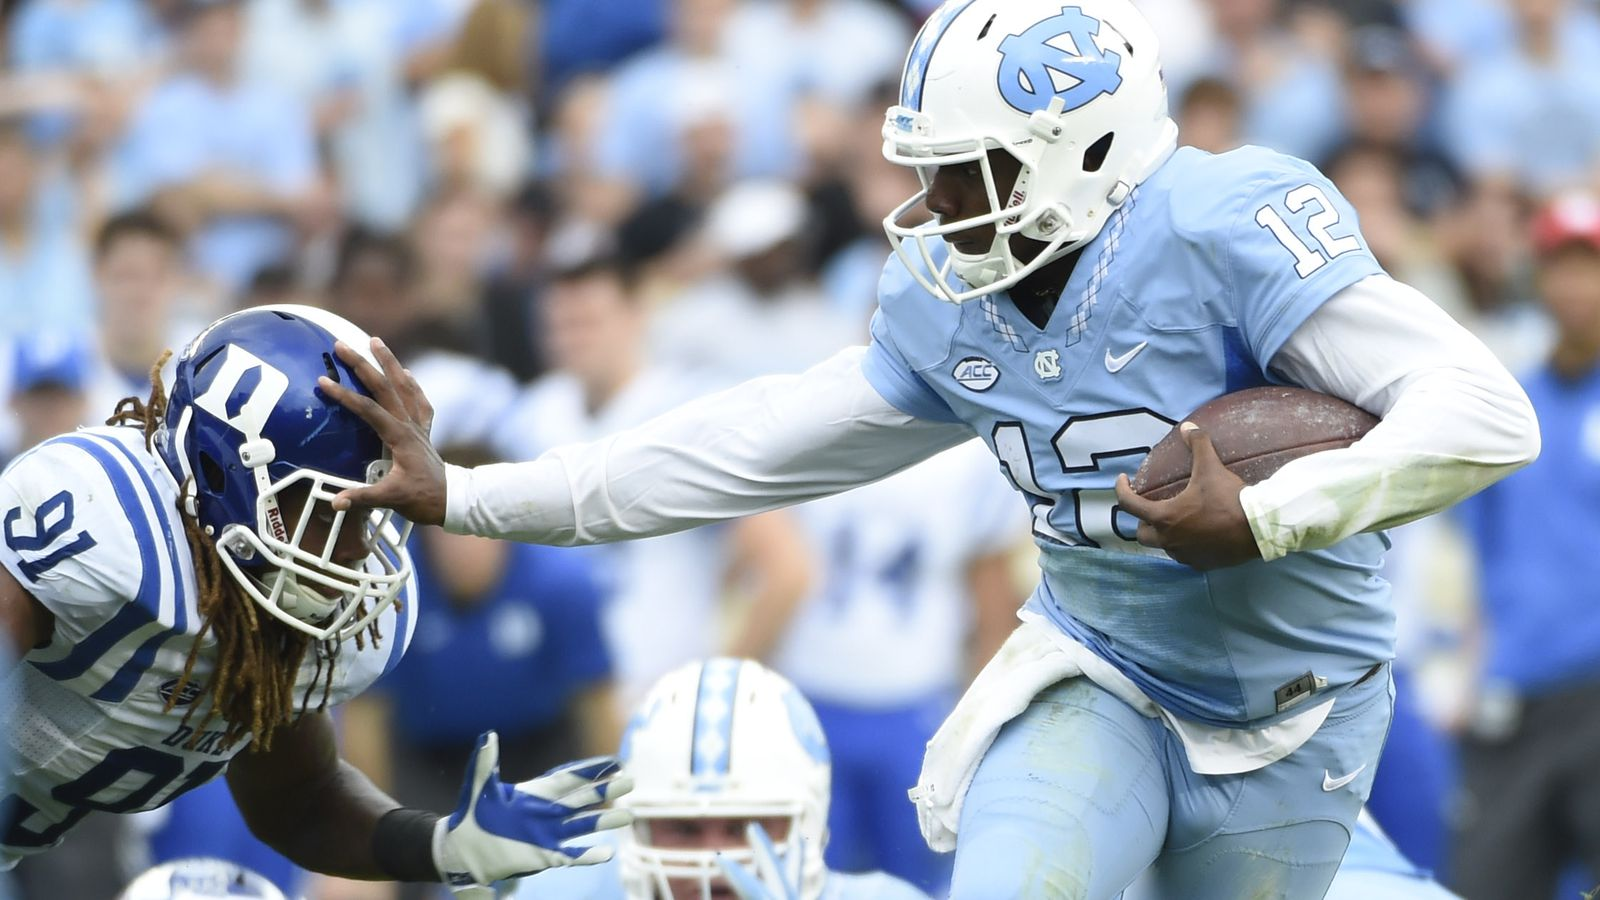 Unc Football Dumped A Basketball Amount Of Points On Duke